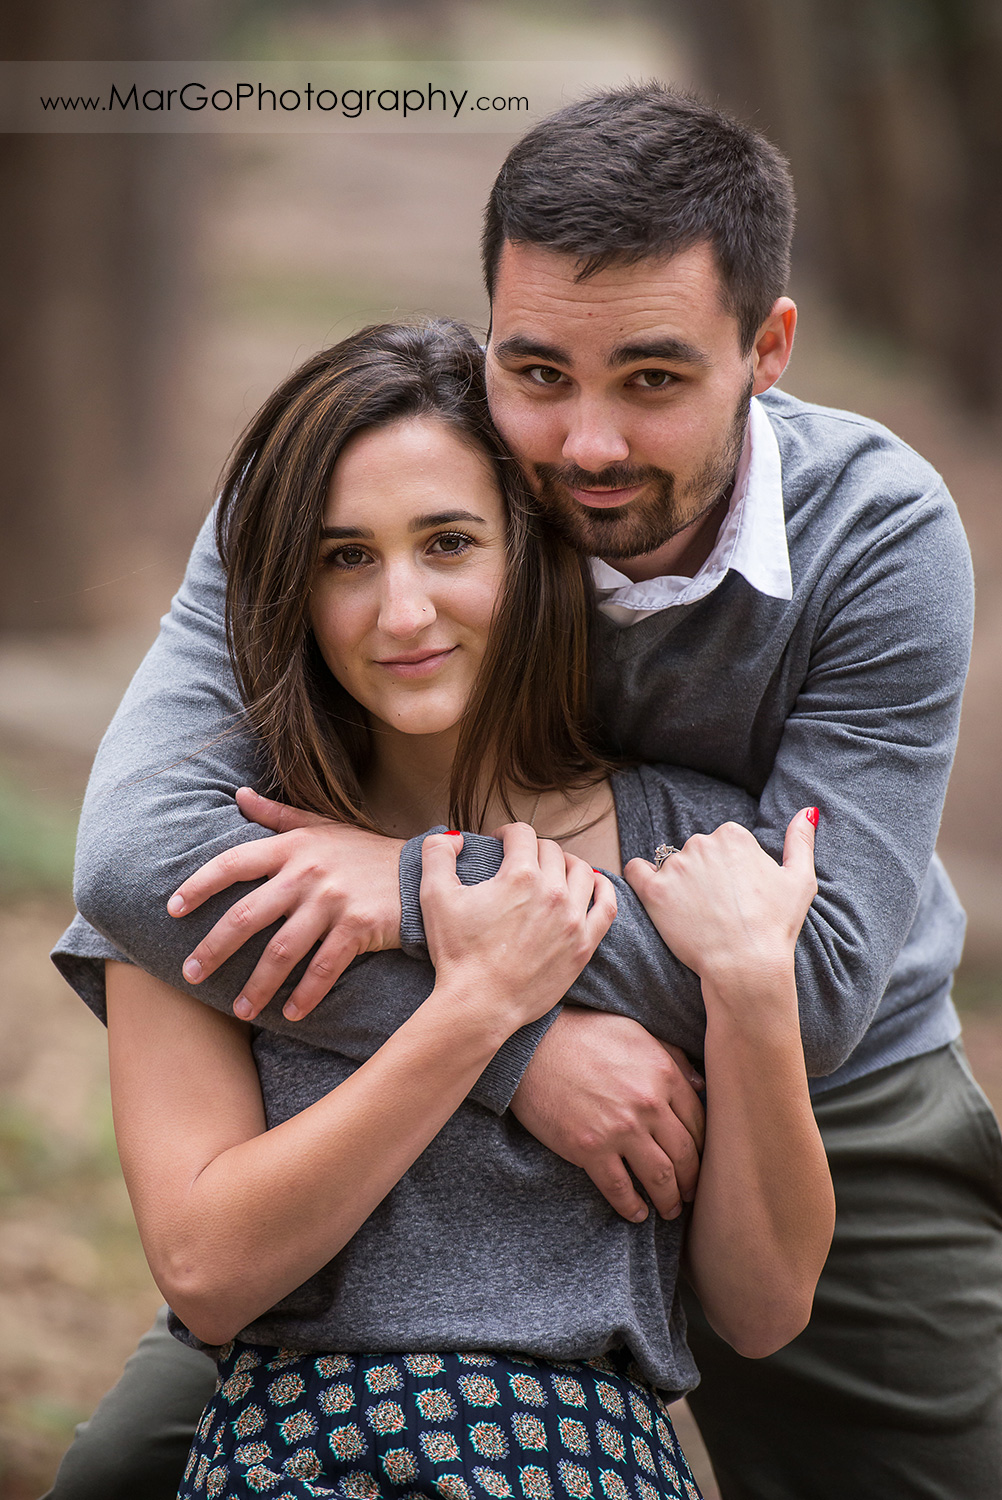 eengagement session at Lover's Lane at the Presidio in San Francisco - portrait of hugging couple